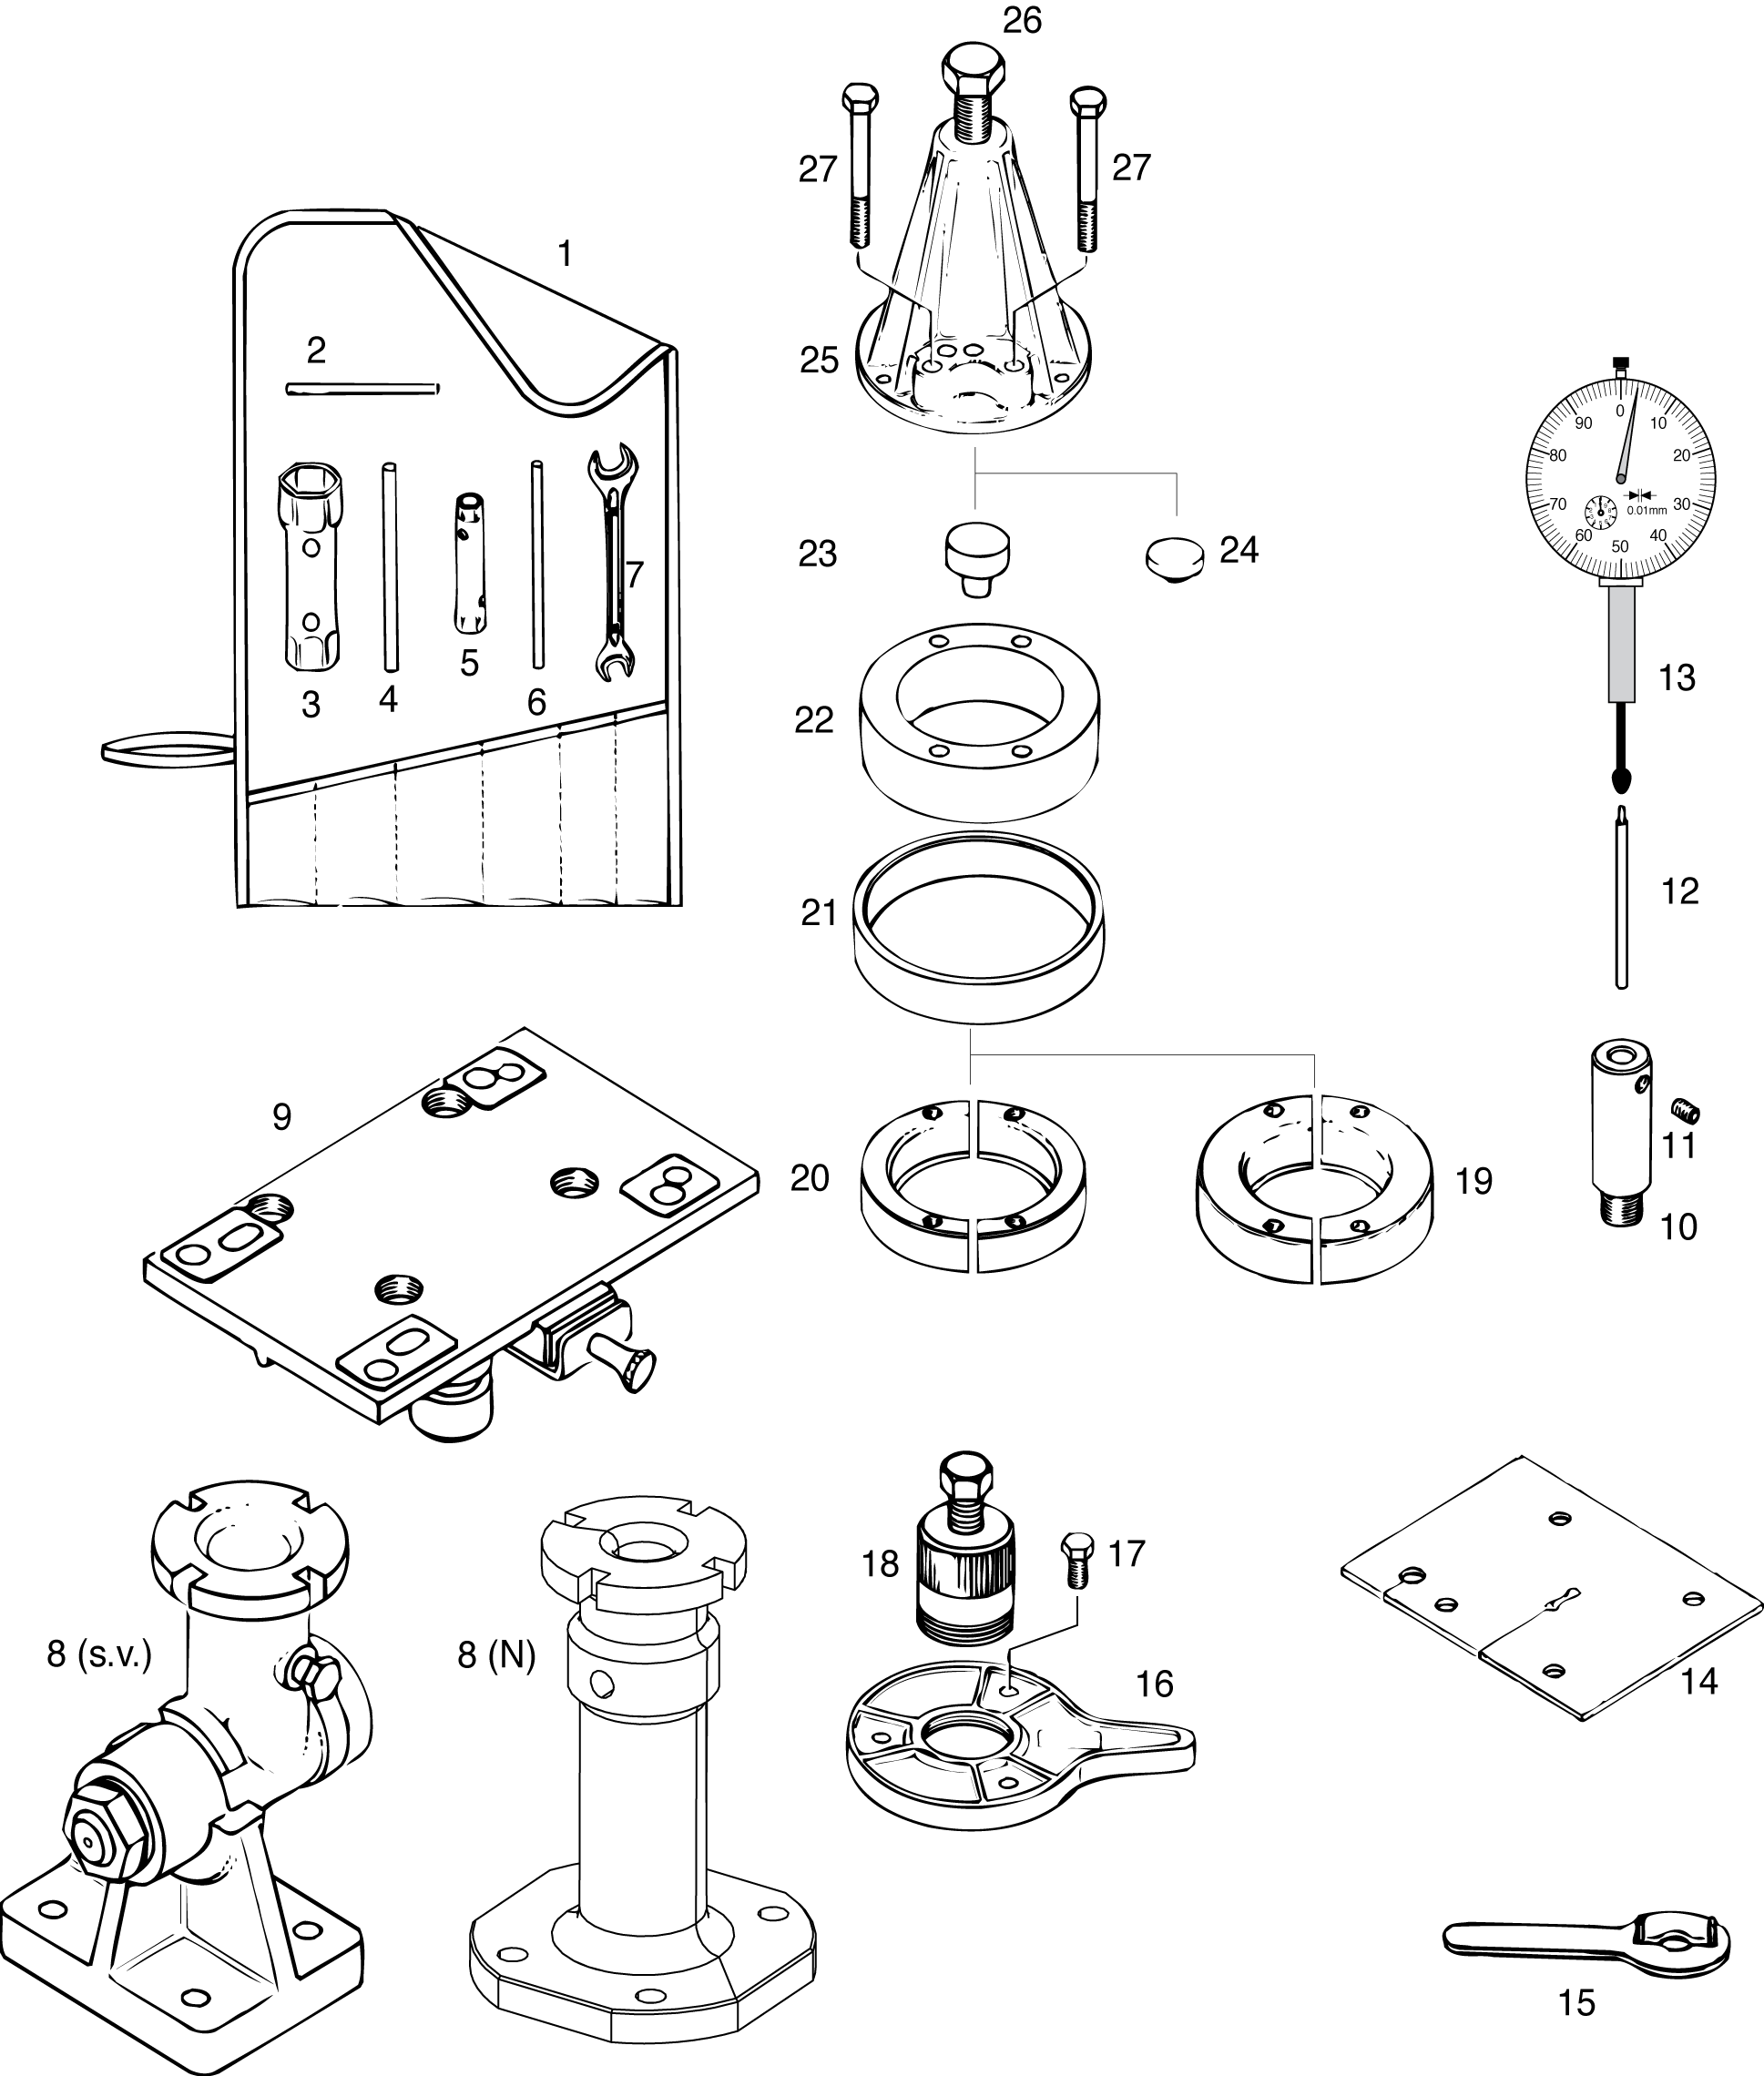 Tools drawing at getdrawings. Mechanic clipart black and white